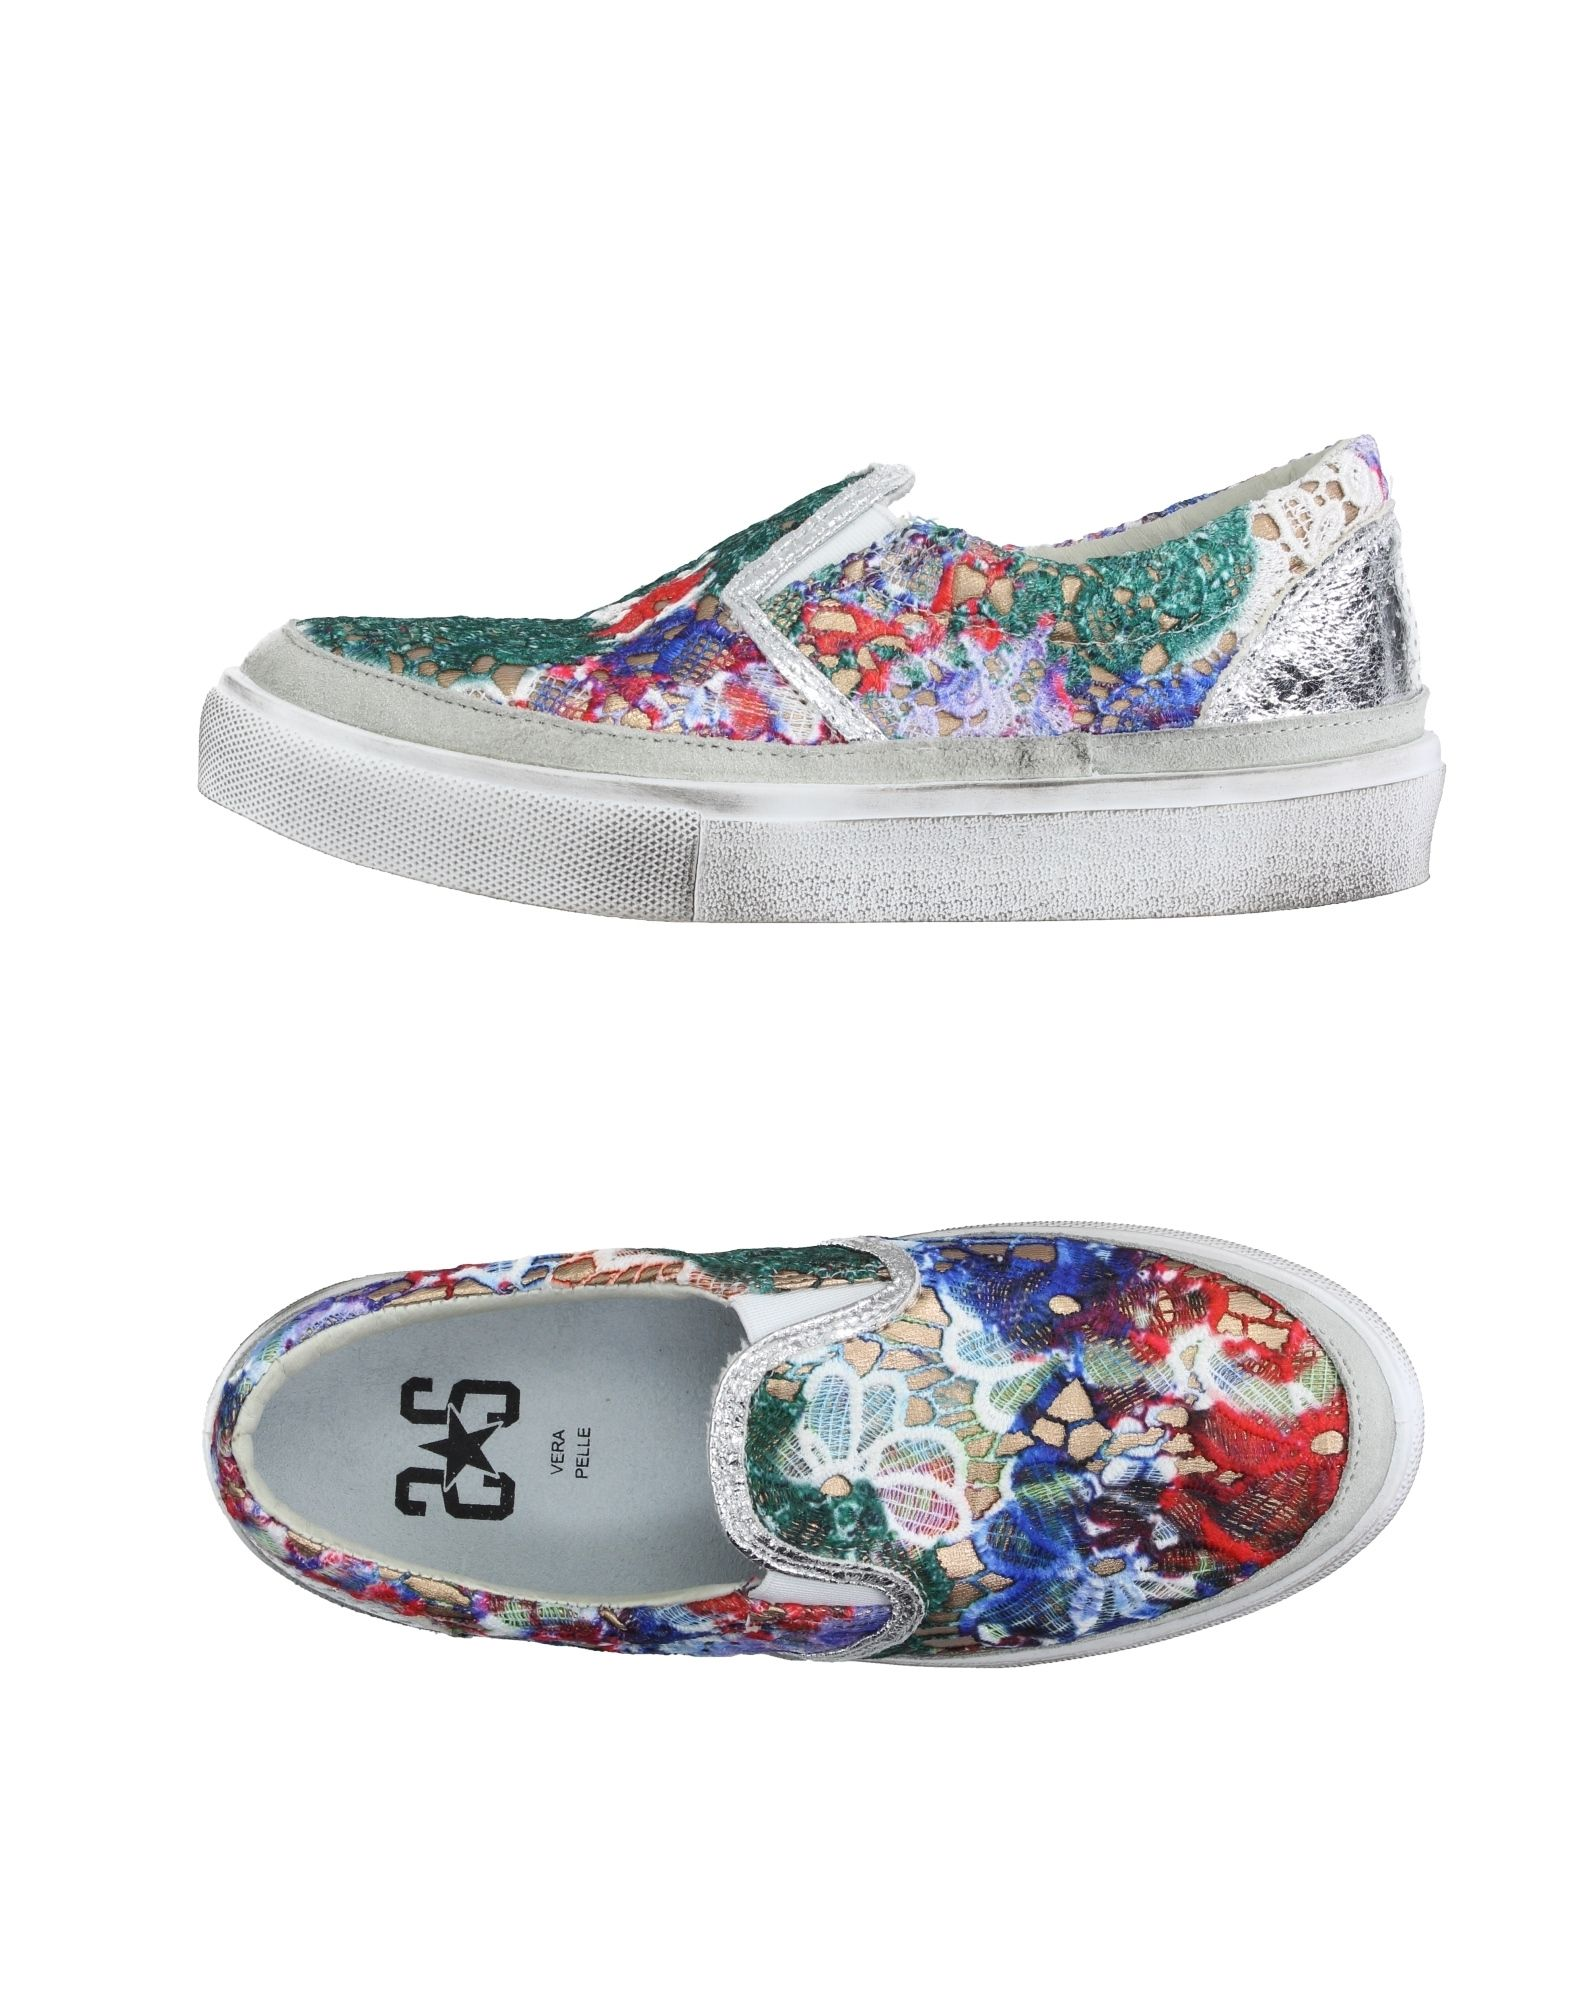 2Star Sneakers - Women 2Star Sneakers online on 11131083QC  United Kingdom - 11131083QC on 26c7a6